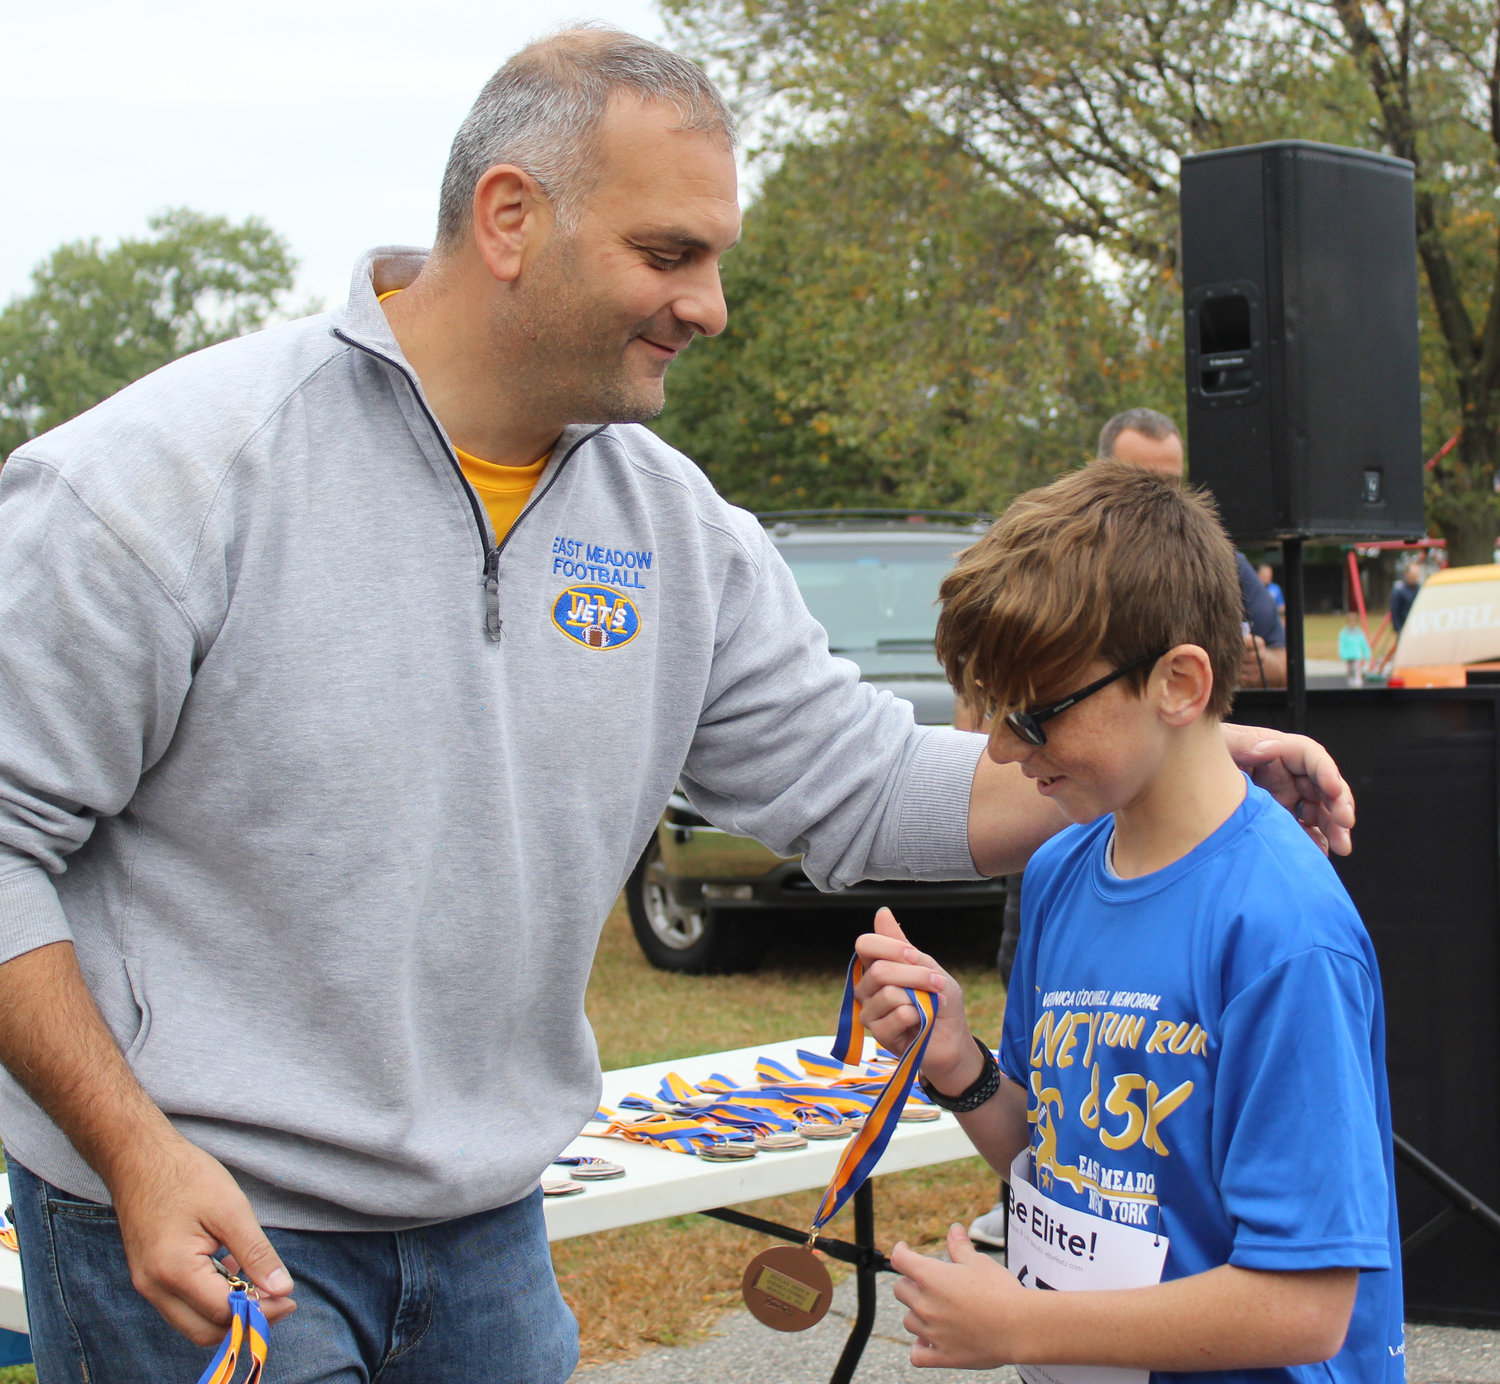 Race organizer Michael Simone, left, congratulated Quinn Giblin, 14, who finished third among boys 14 and under.